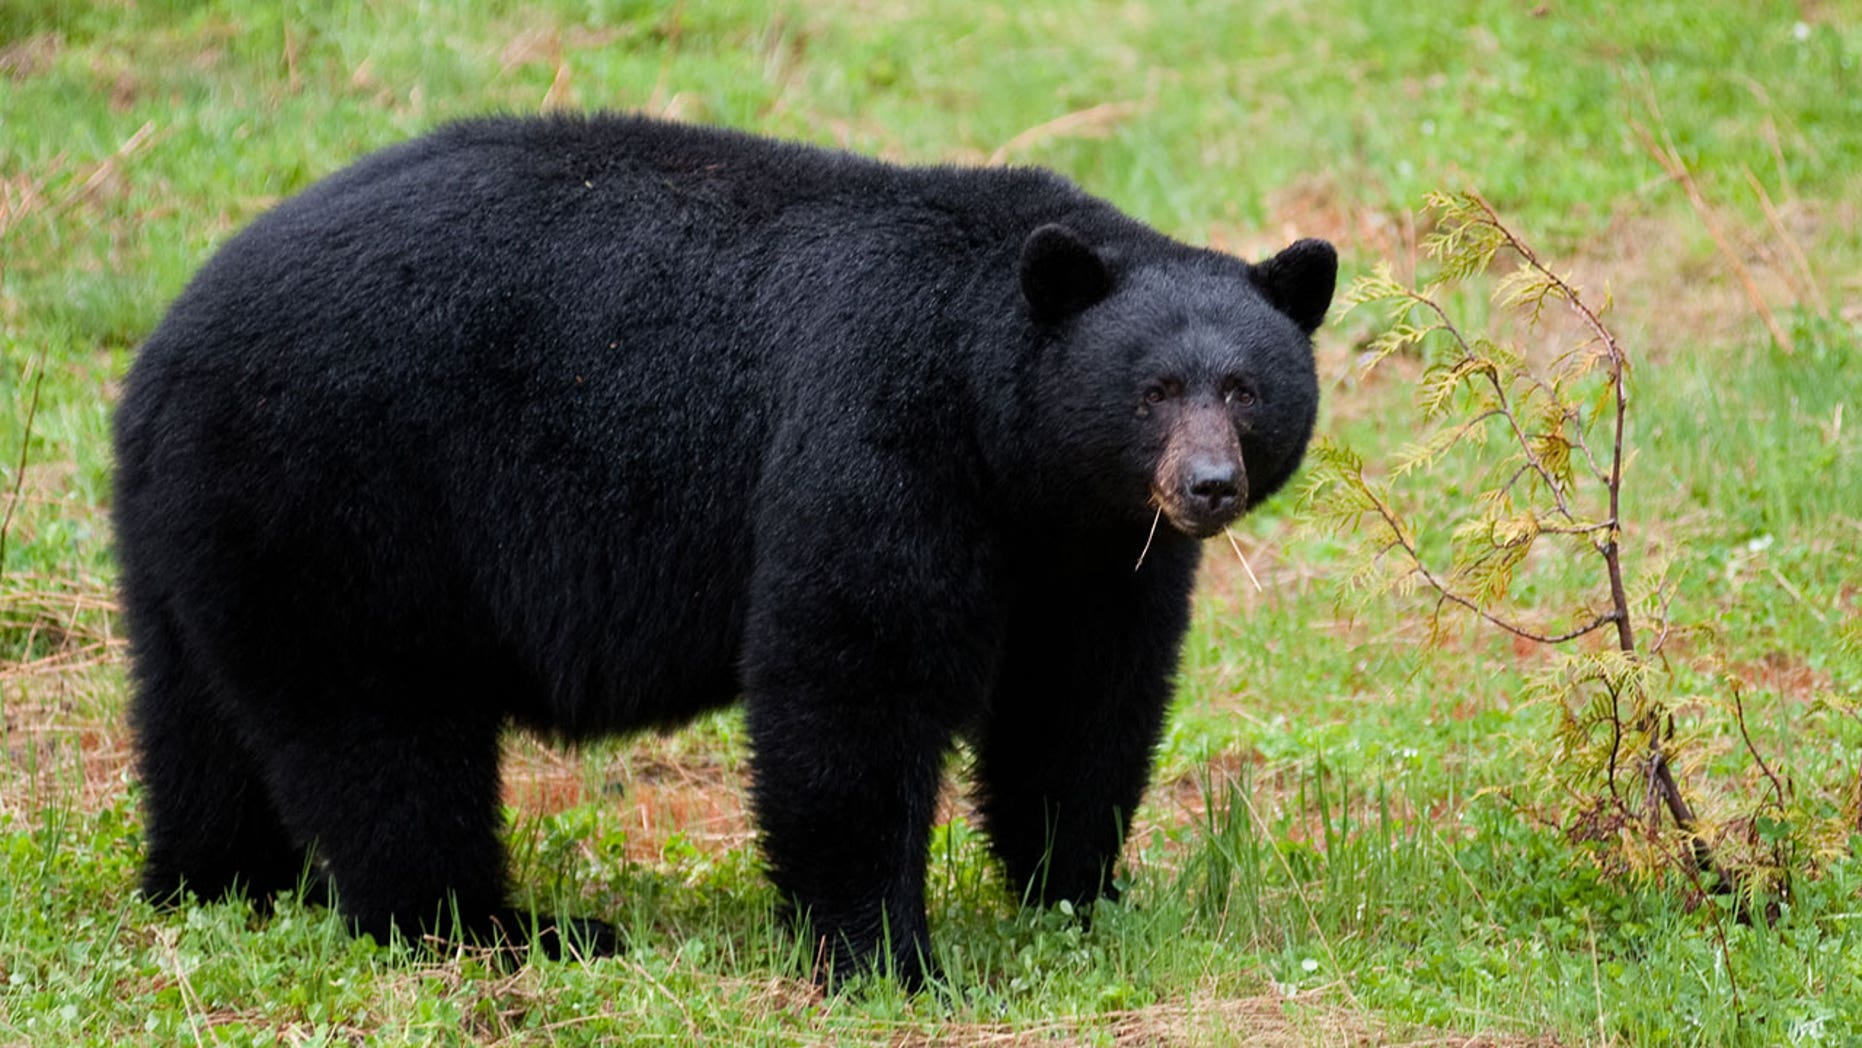 Protesters were arrested early on Monday morning during protests over New Jersey's annual bear hunt.